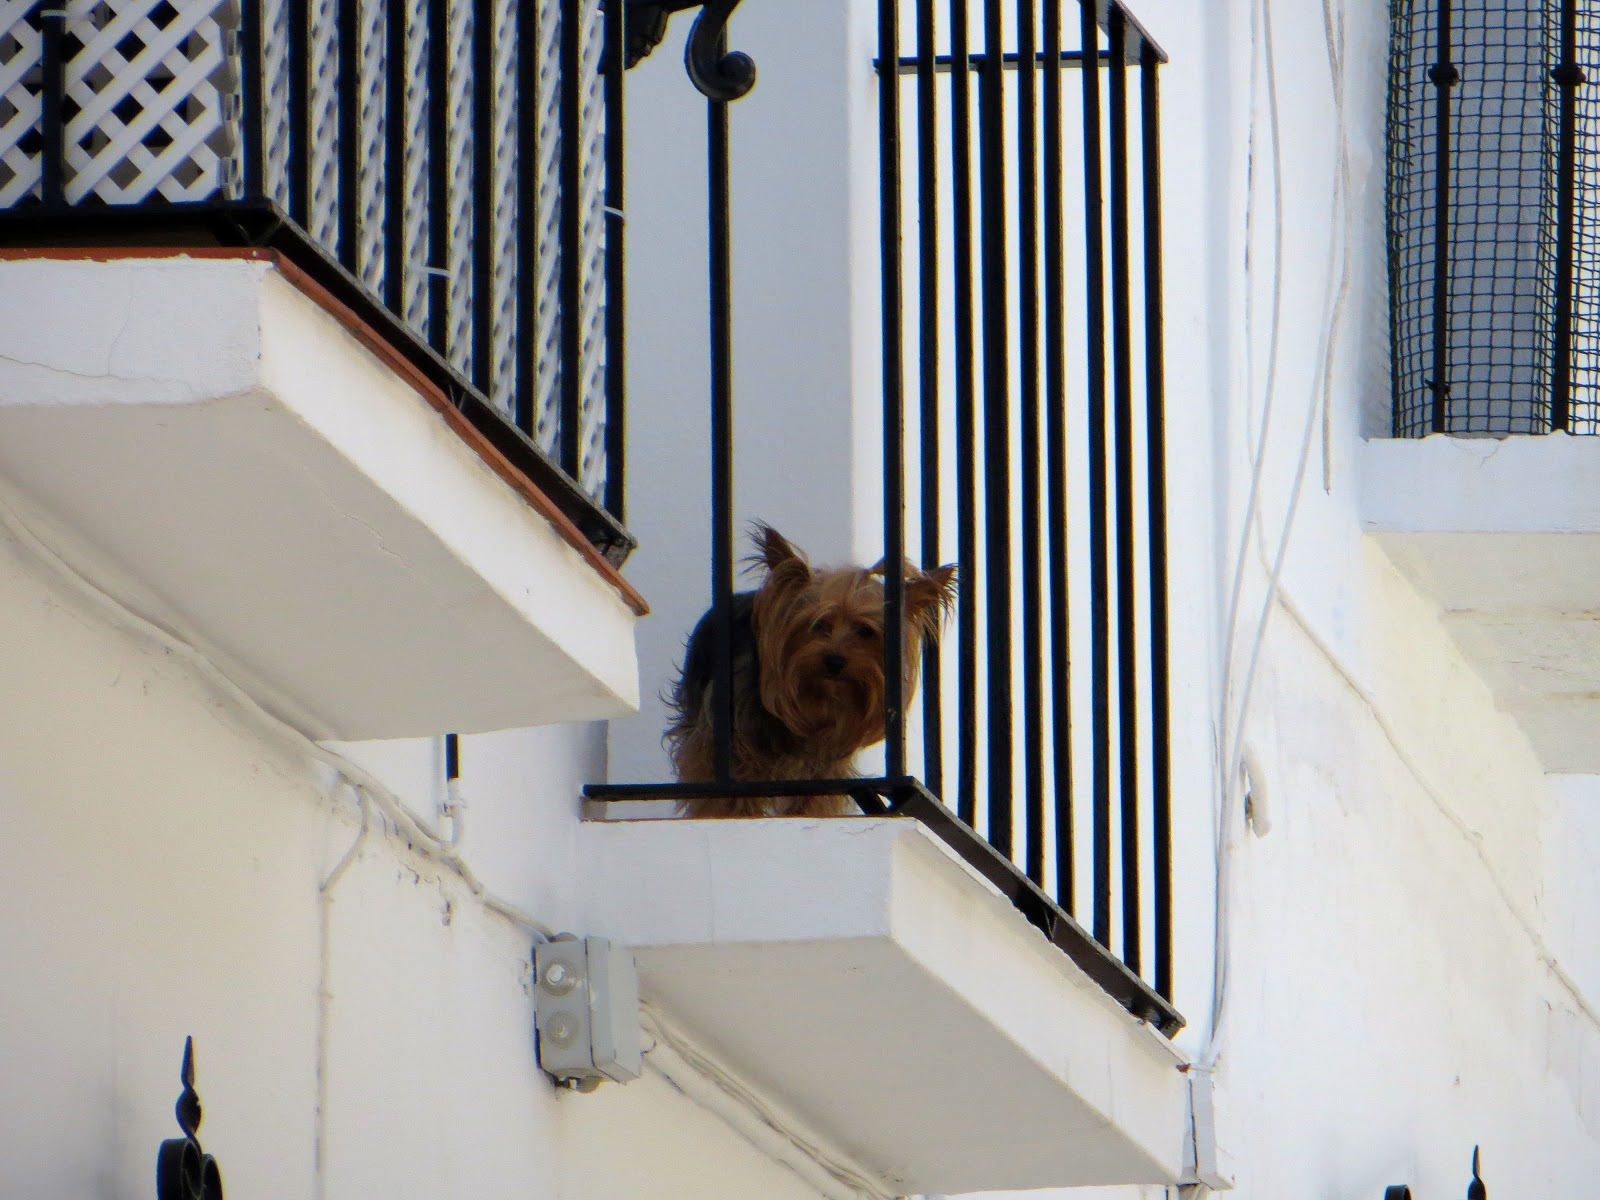 balconies of Mijas